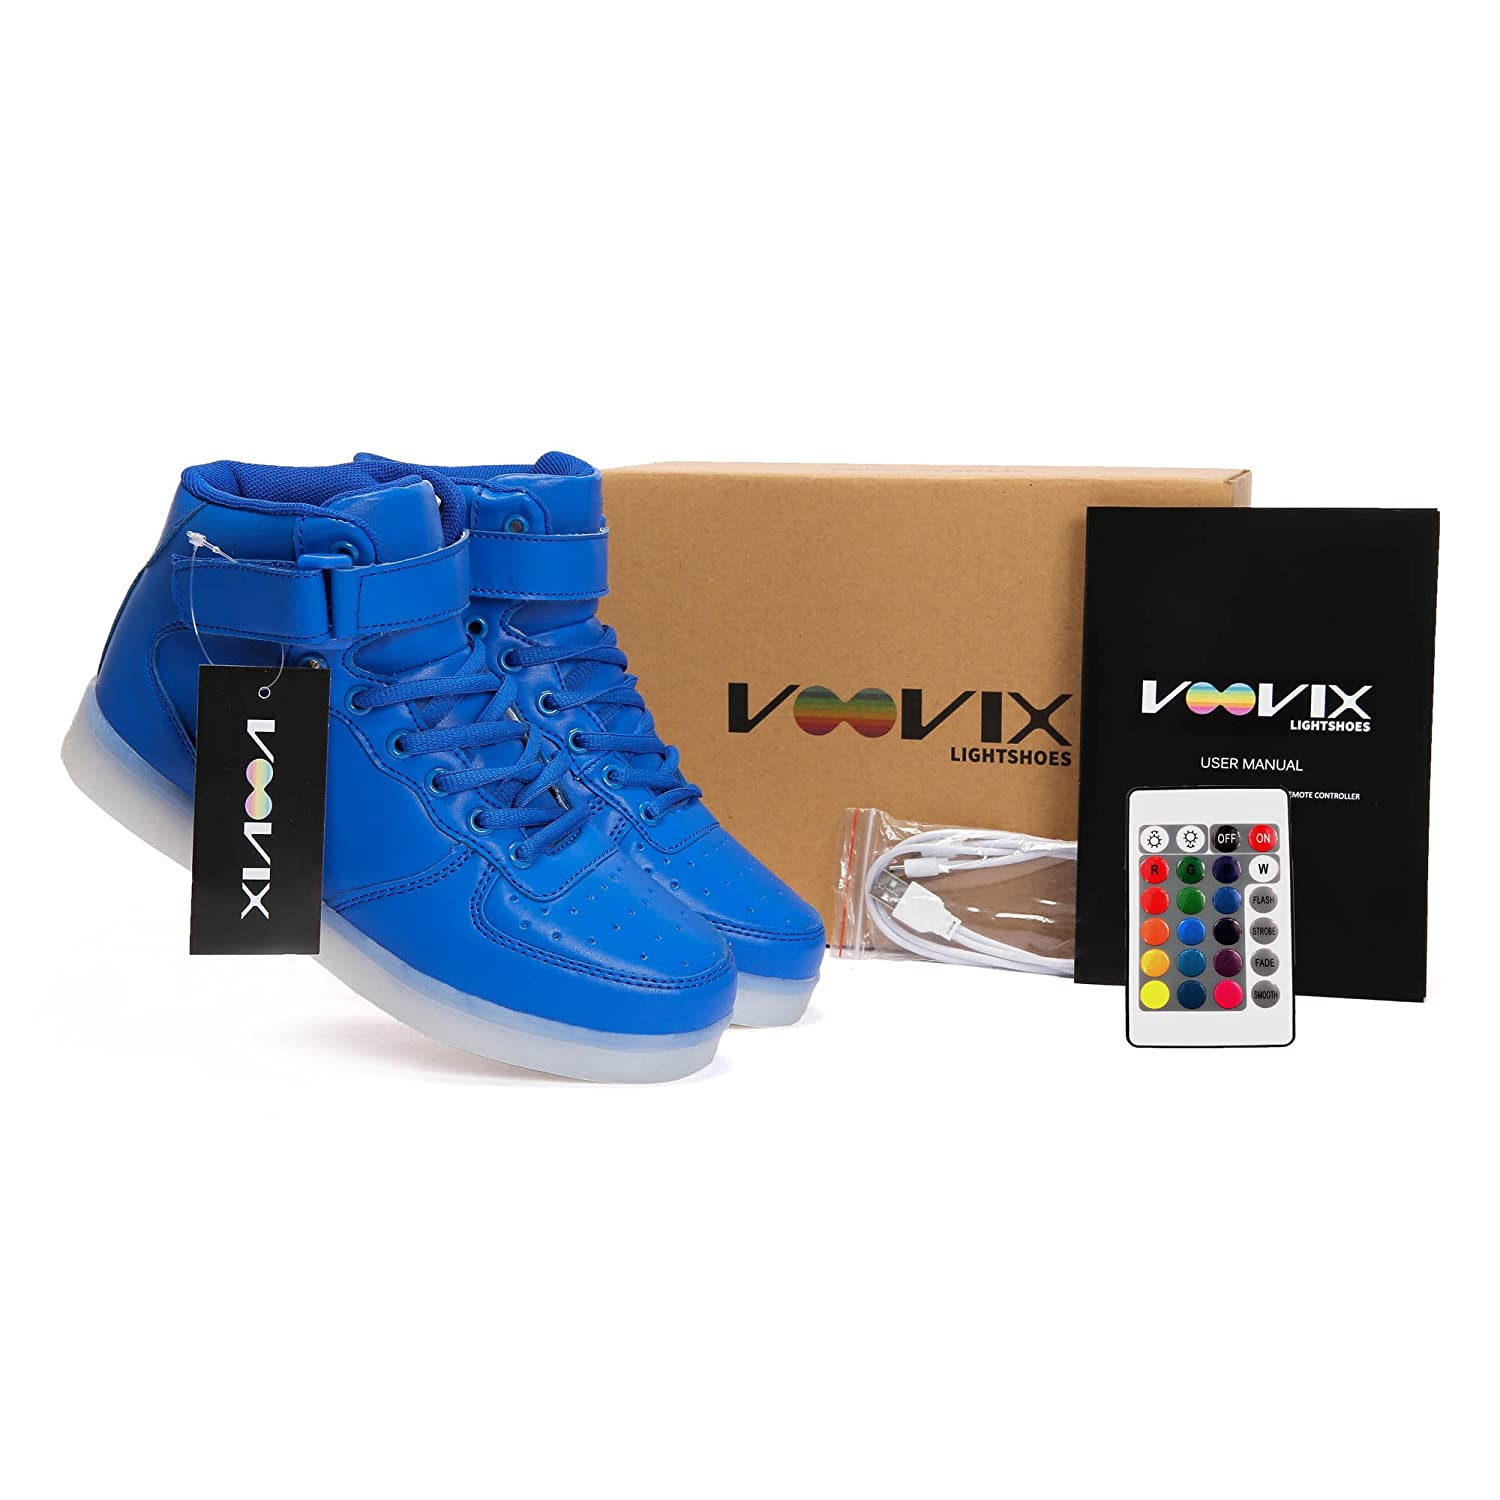 Voovix Kids LED Light Up Shoes USB Charging Flashing High-top Sneakers with Remote Control for Boys and Girls